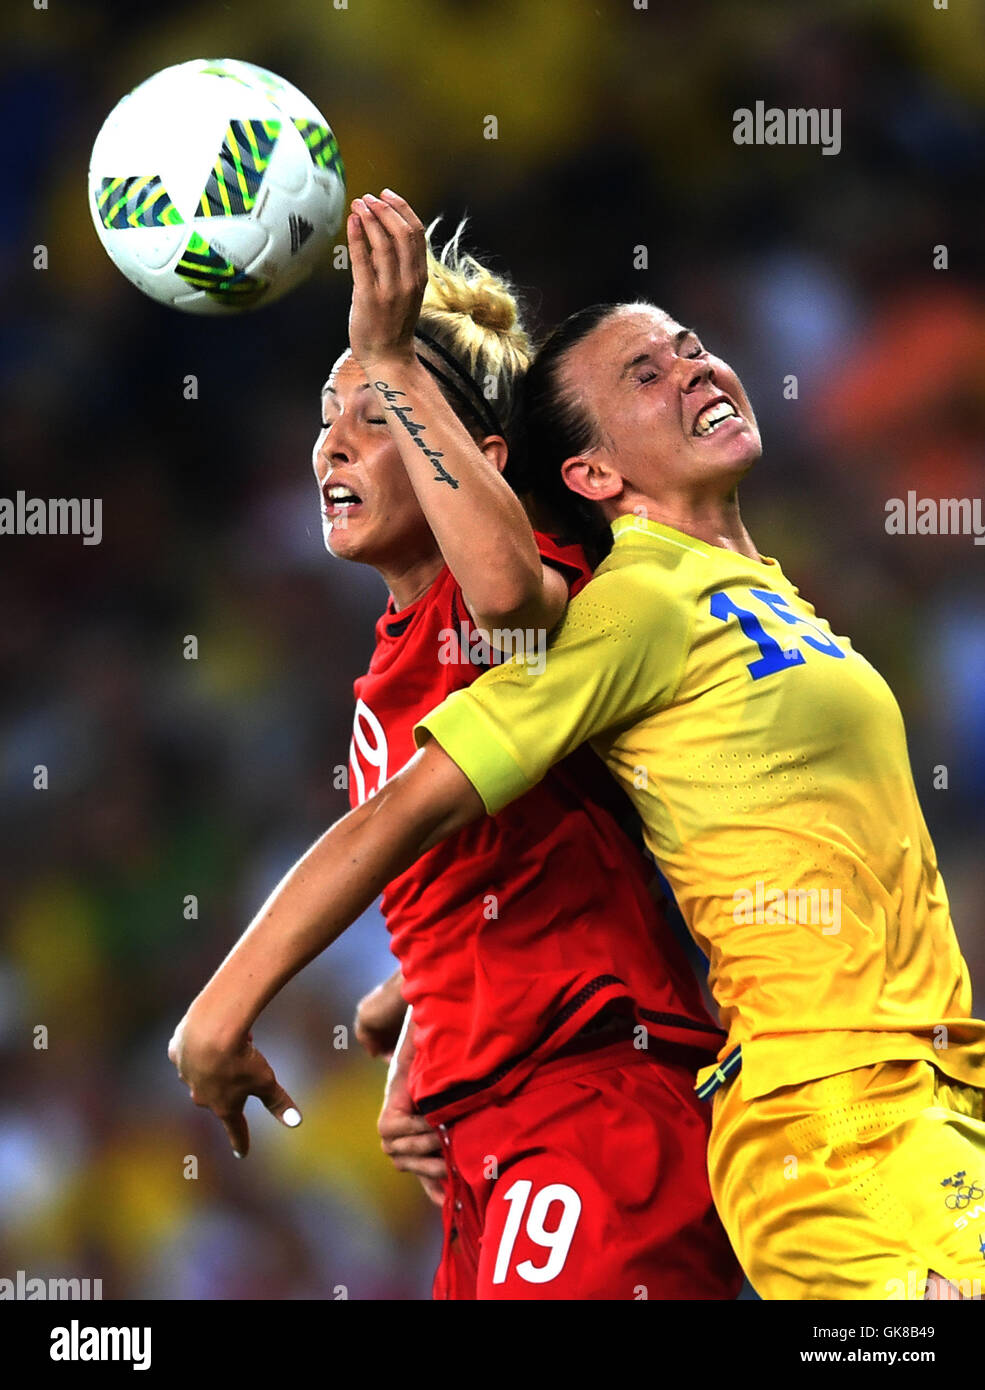 Rio De Janeiro, Brazil. 19th Aug, 2016. Germany's Svenja Huth (L) vies for the ball during the women's gold - Stock Image